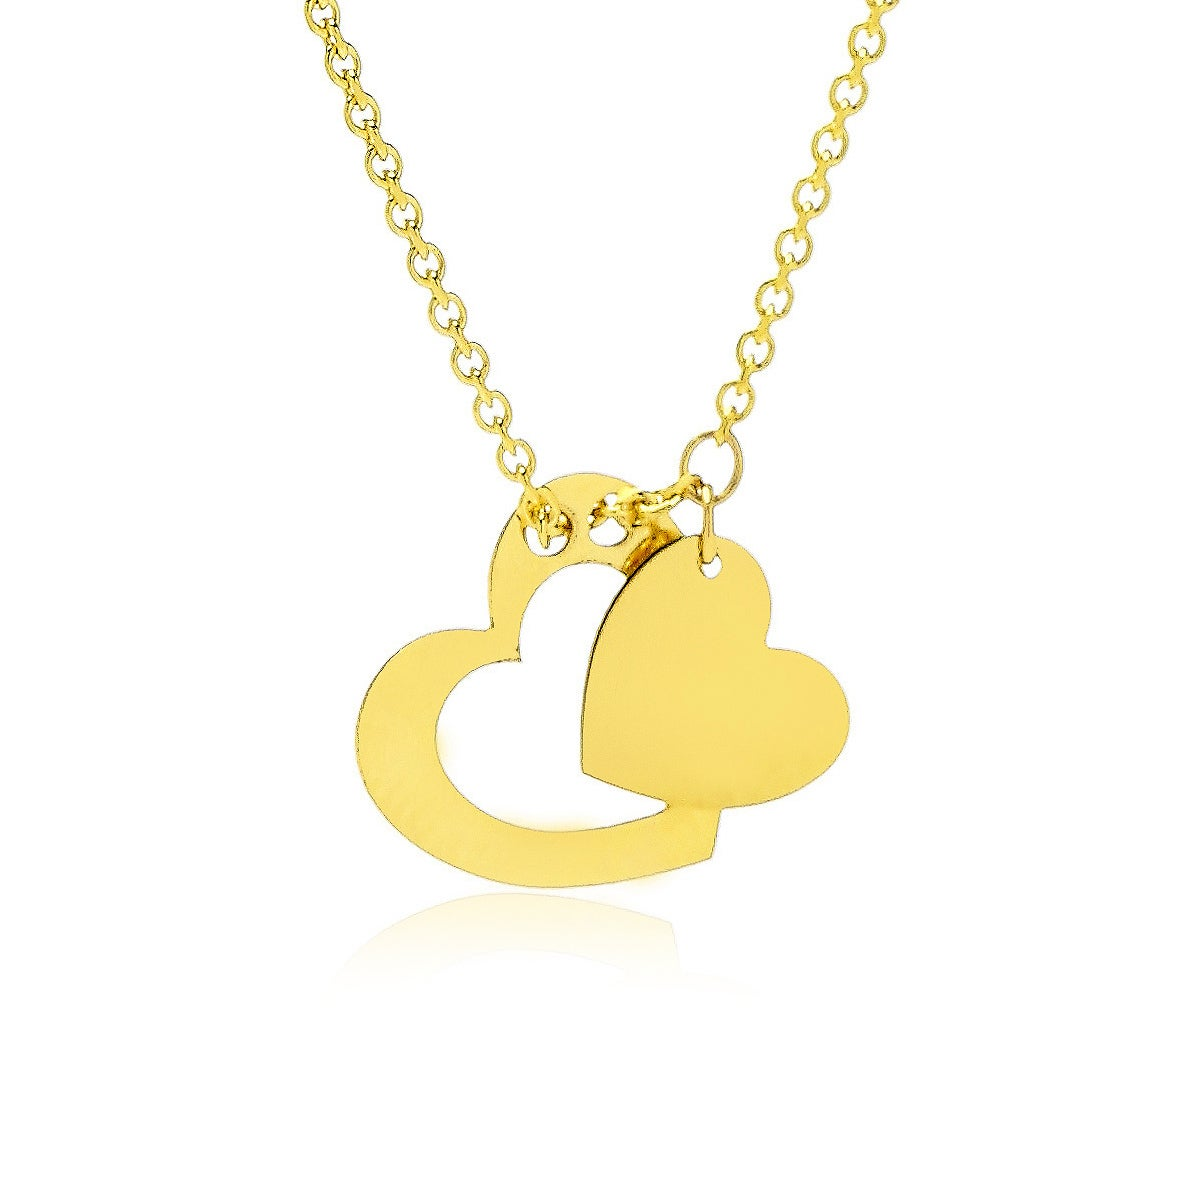 Adjustable Floating Double Heart Necklace In 14K Yellow G...